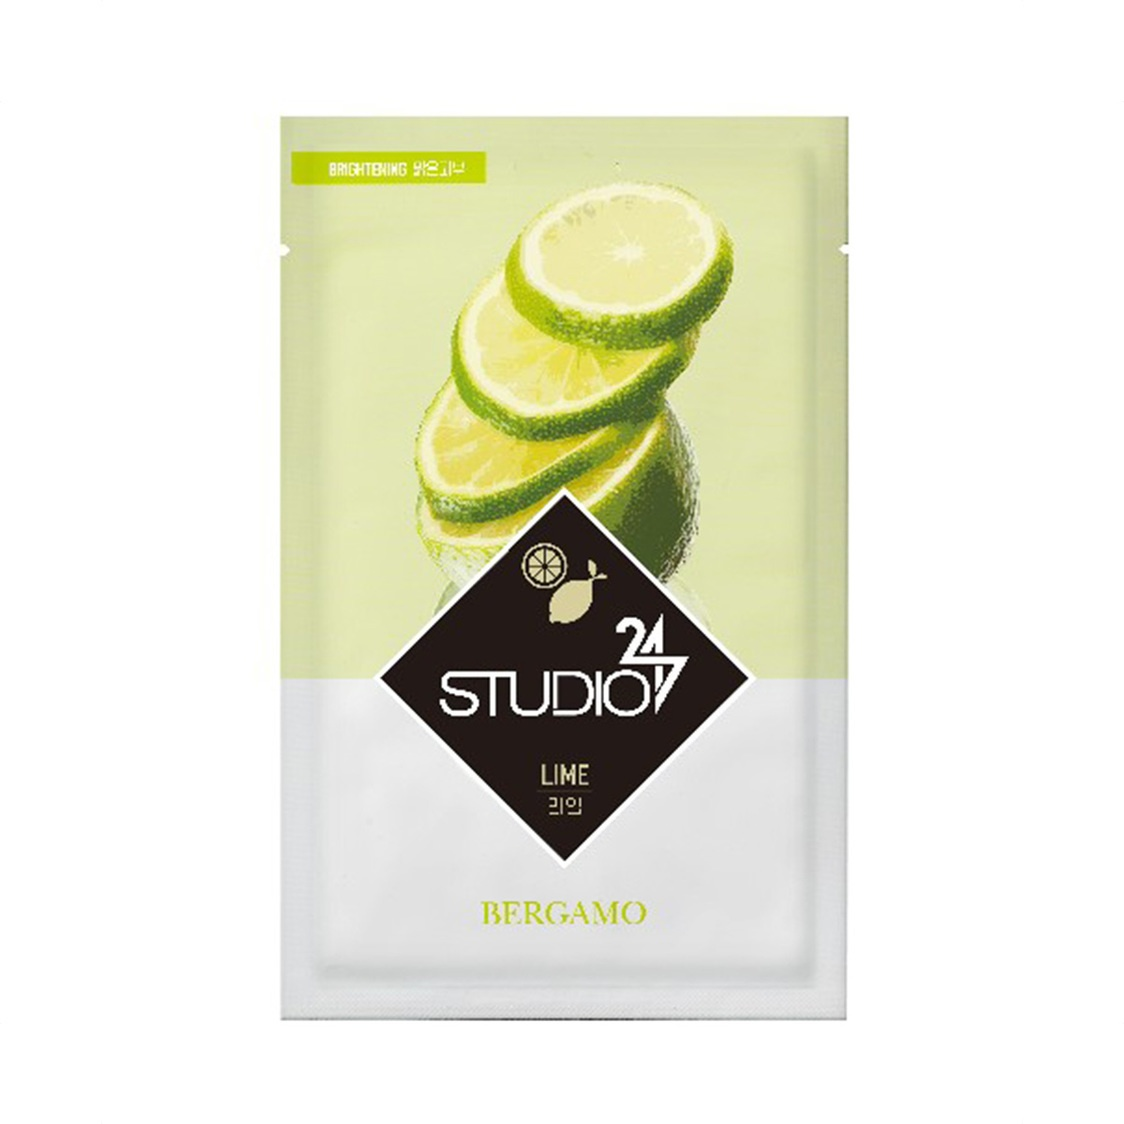 Studio 247 Lime 10pcs